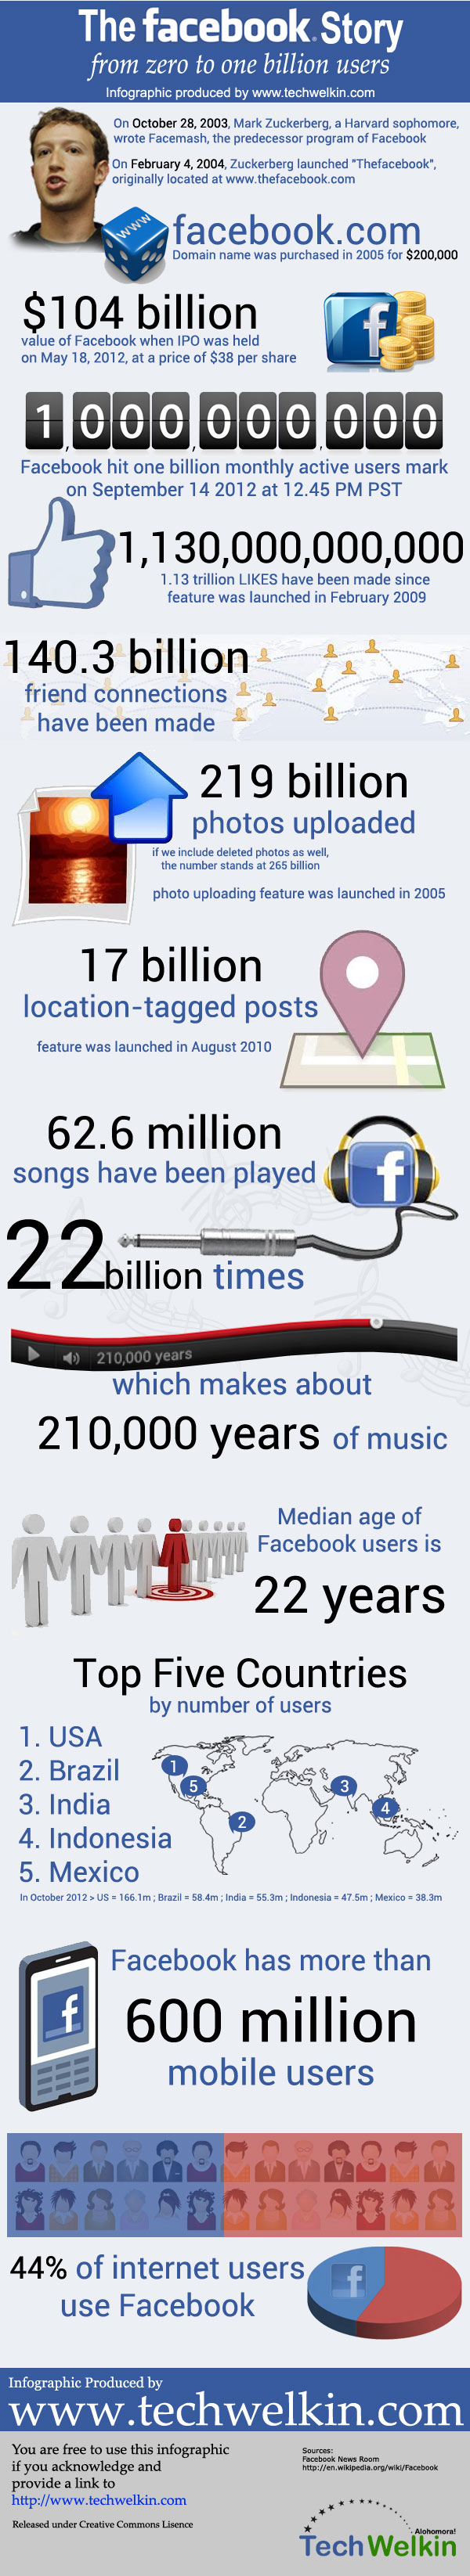 Facebook facts and statistics by TechWelkin.com